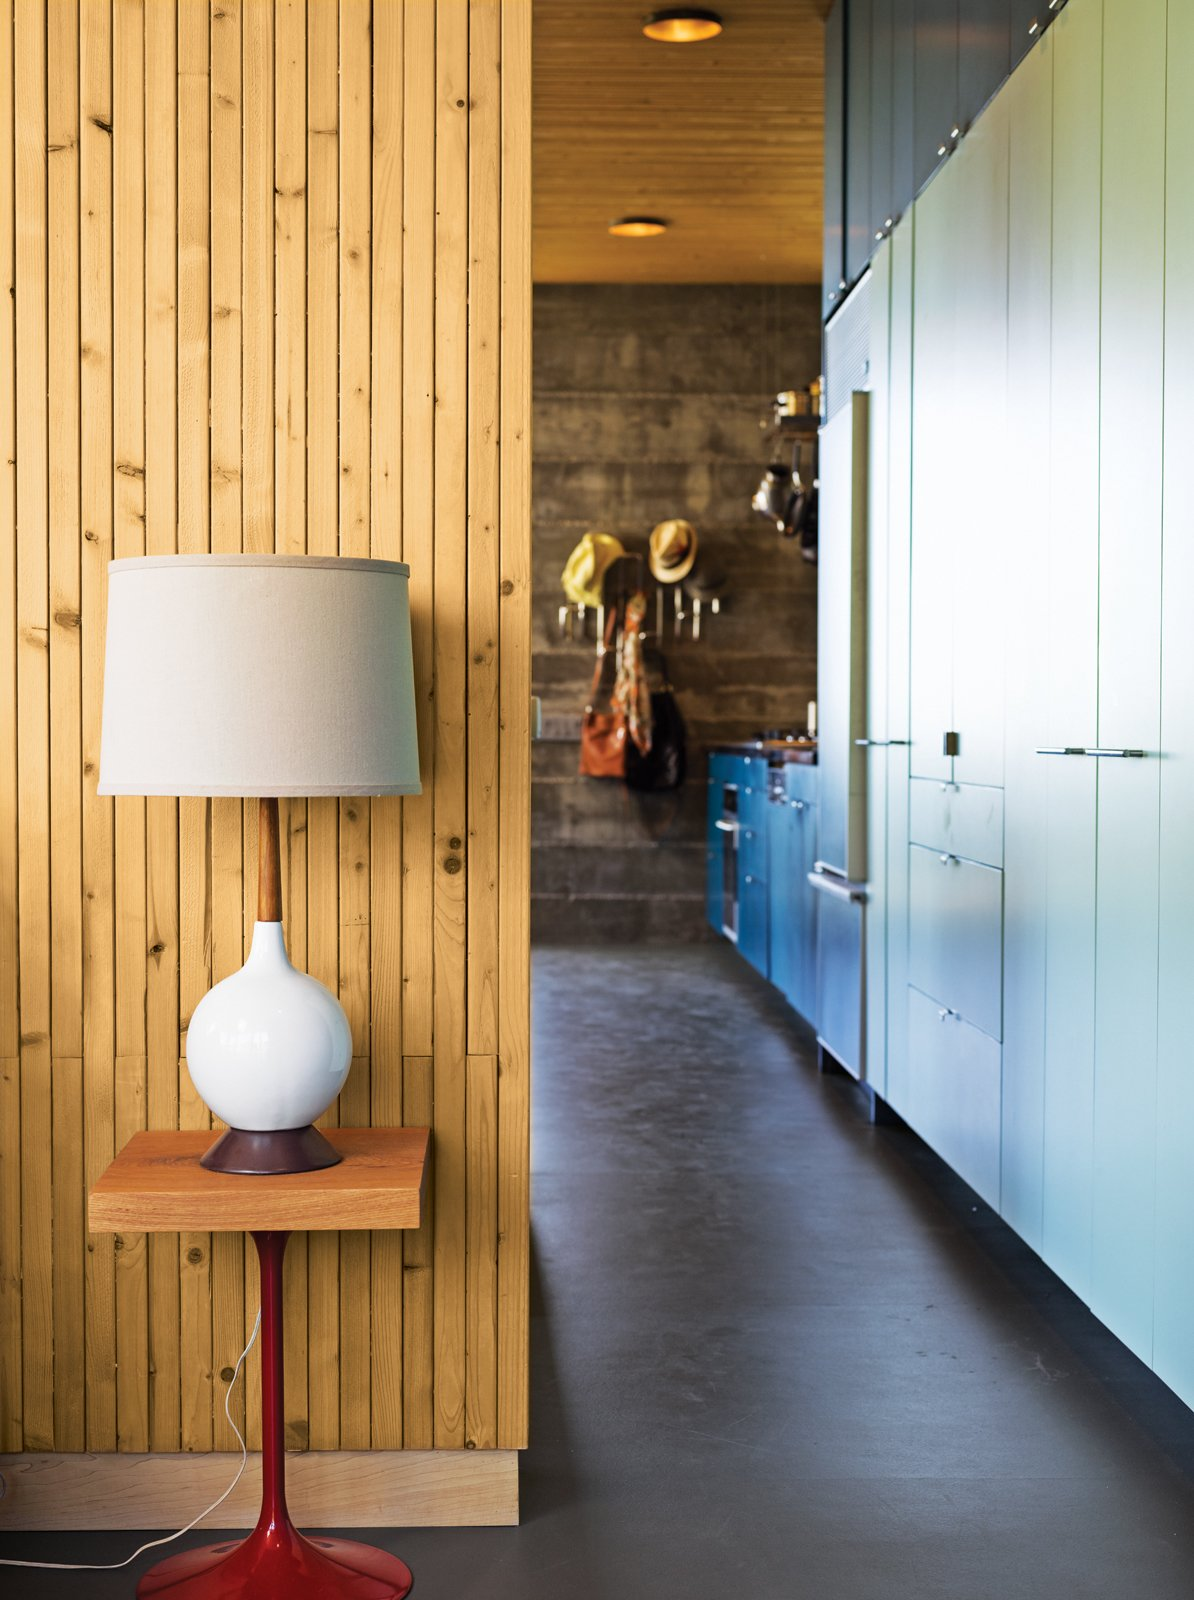 Working with a limited footprint, a daunting slope, and killer views, architect Bruce Bolander went vertical with a secluded canyon house in Malibu. A colorful, laminate-clad wall of storage stretches seamlessly from the kitchen to the bedroom, where a repurposed speaker stand serves as the bedside table. Photo by J Bennett Fitts. Tagged: Living Room, Table Lighting, and Concrete Floor.  Photo 1 of 9 in Malibu Canyon House with a View